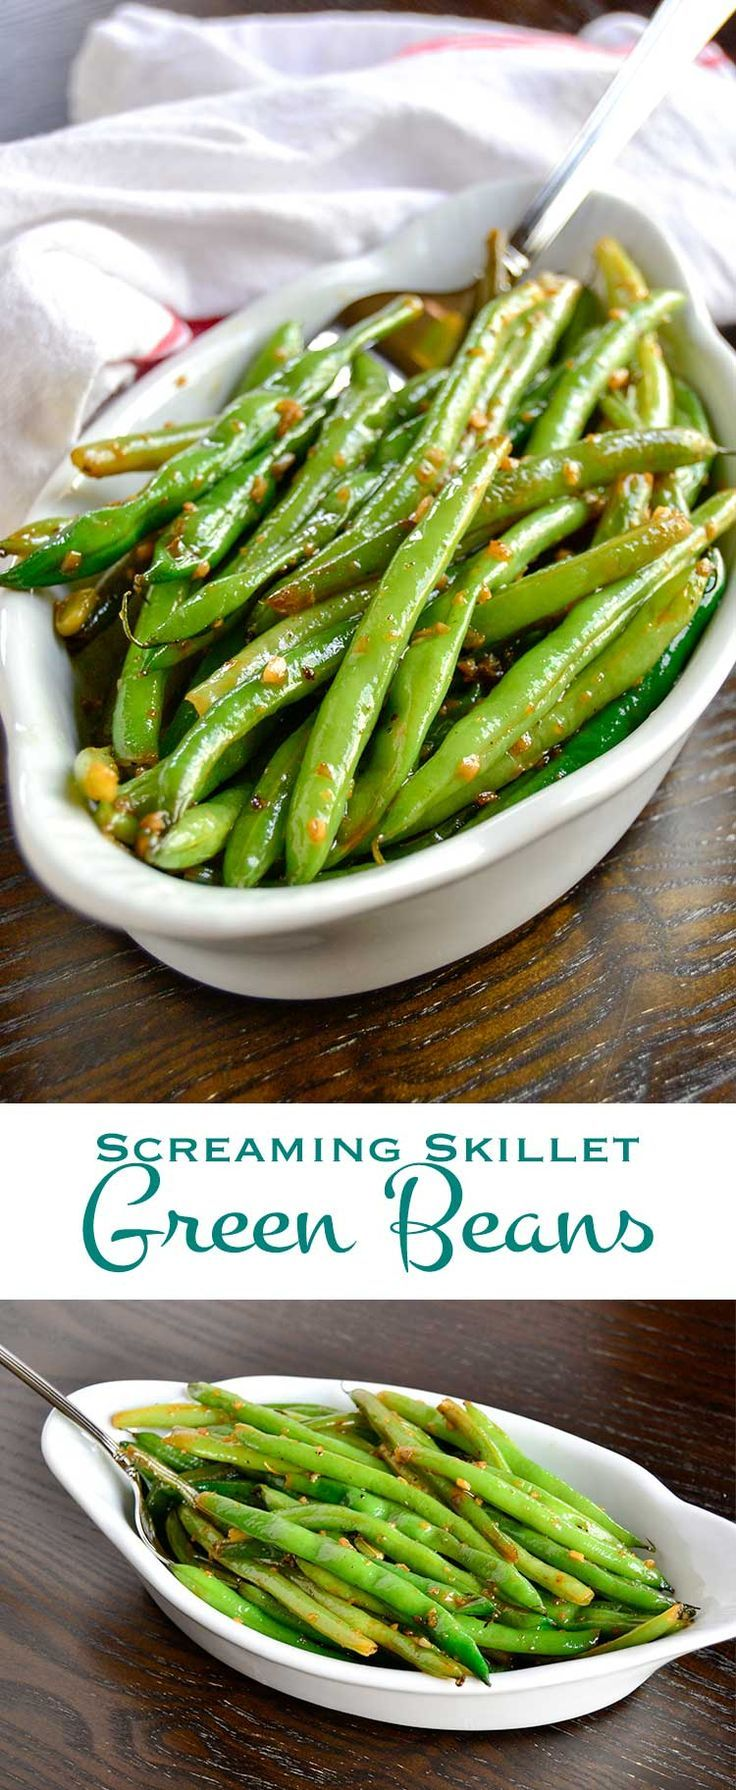 Screaming skillet green beans get their name from the screaming hot skillet used to cook them. Laced with garlic and the fruity citrus notes of white wine, they make a great summer side dish. Vertical images combined for pinterest.